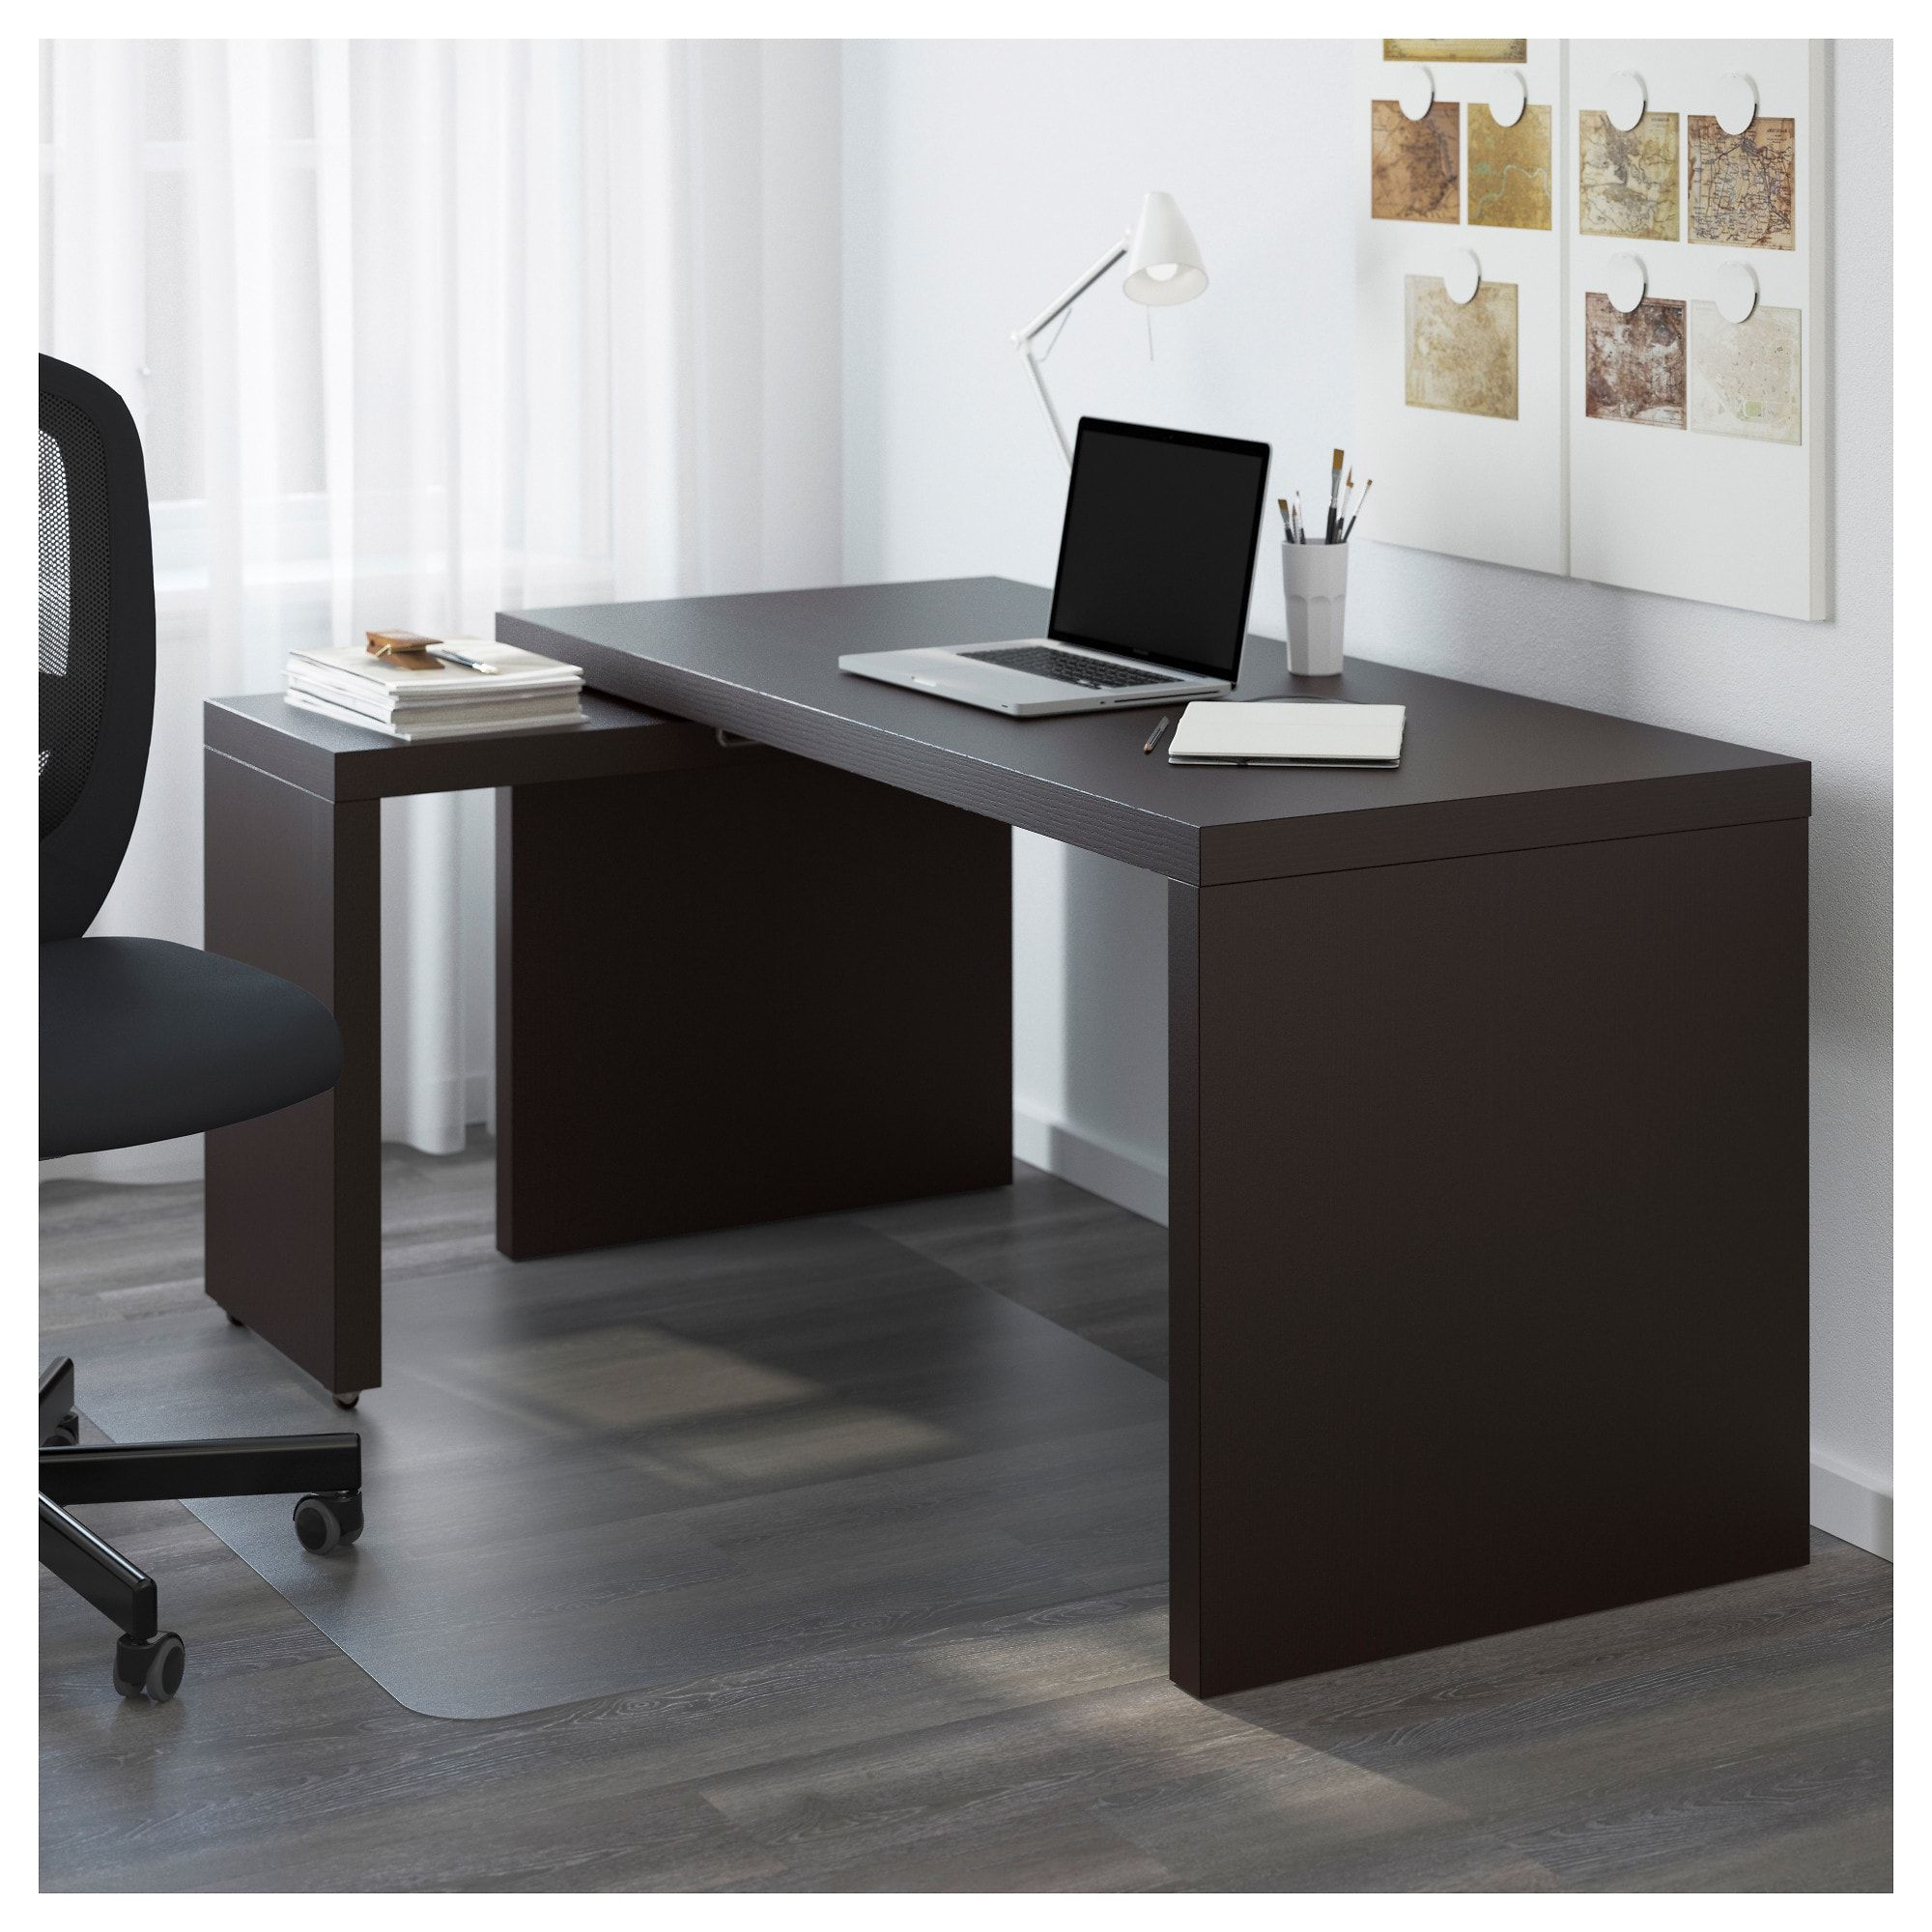 Malm Desk With Pull Out Panel Black Brown 151X65 Cm  Ikea